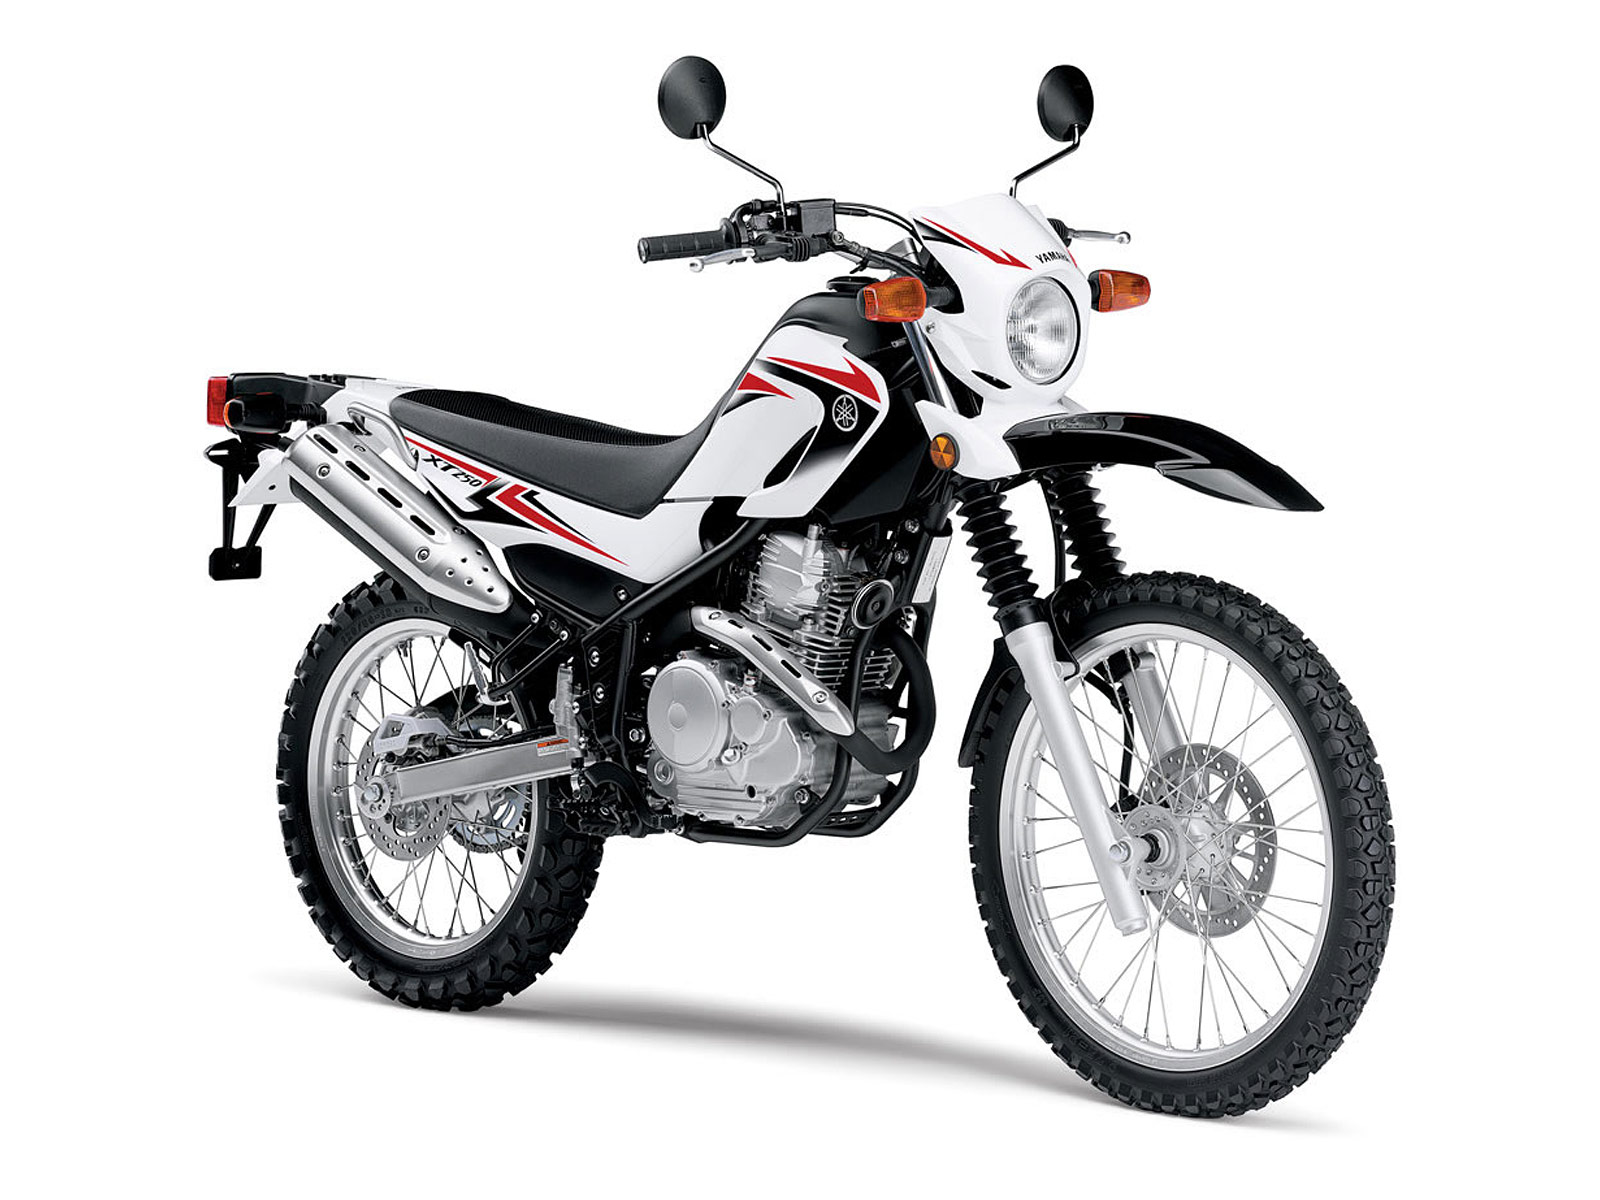 2010 YAMAHA XT250 Motorcycle Photos